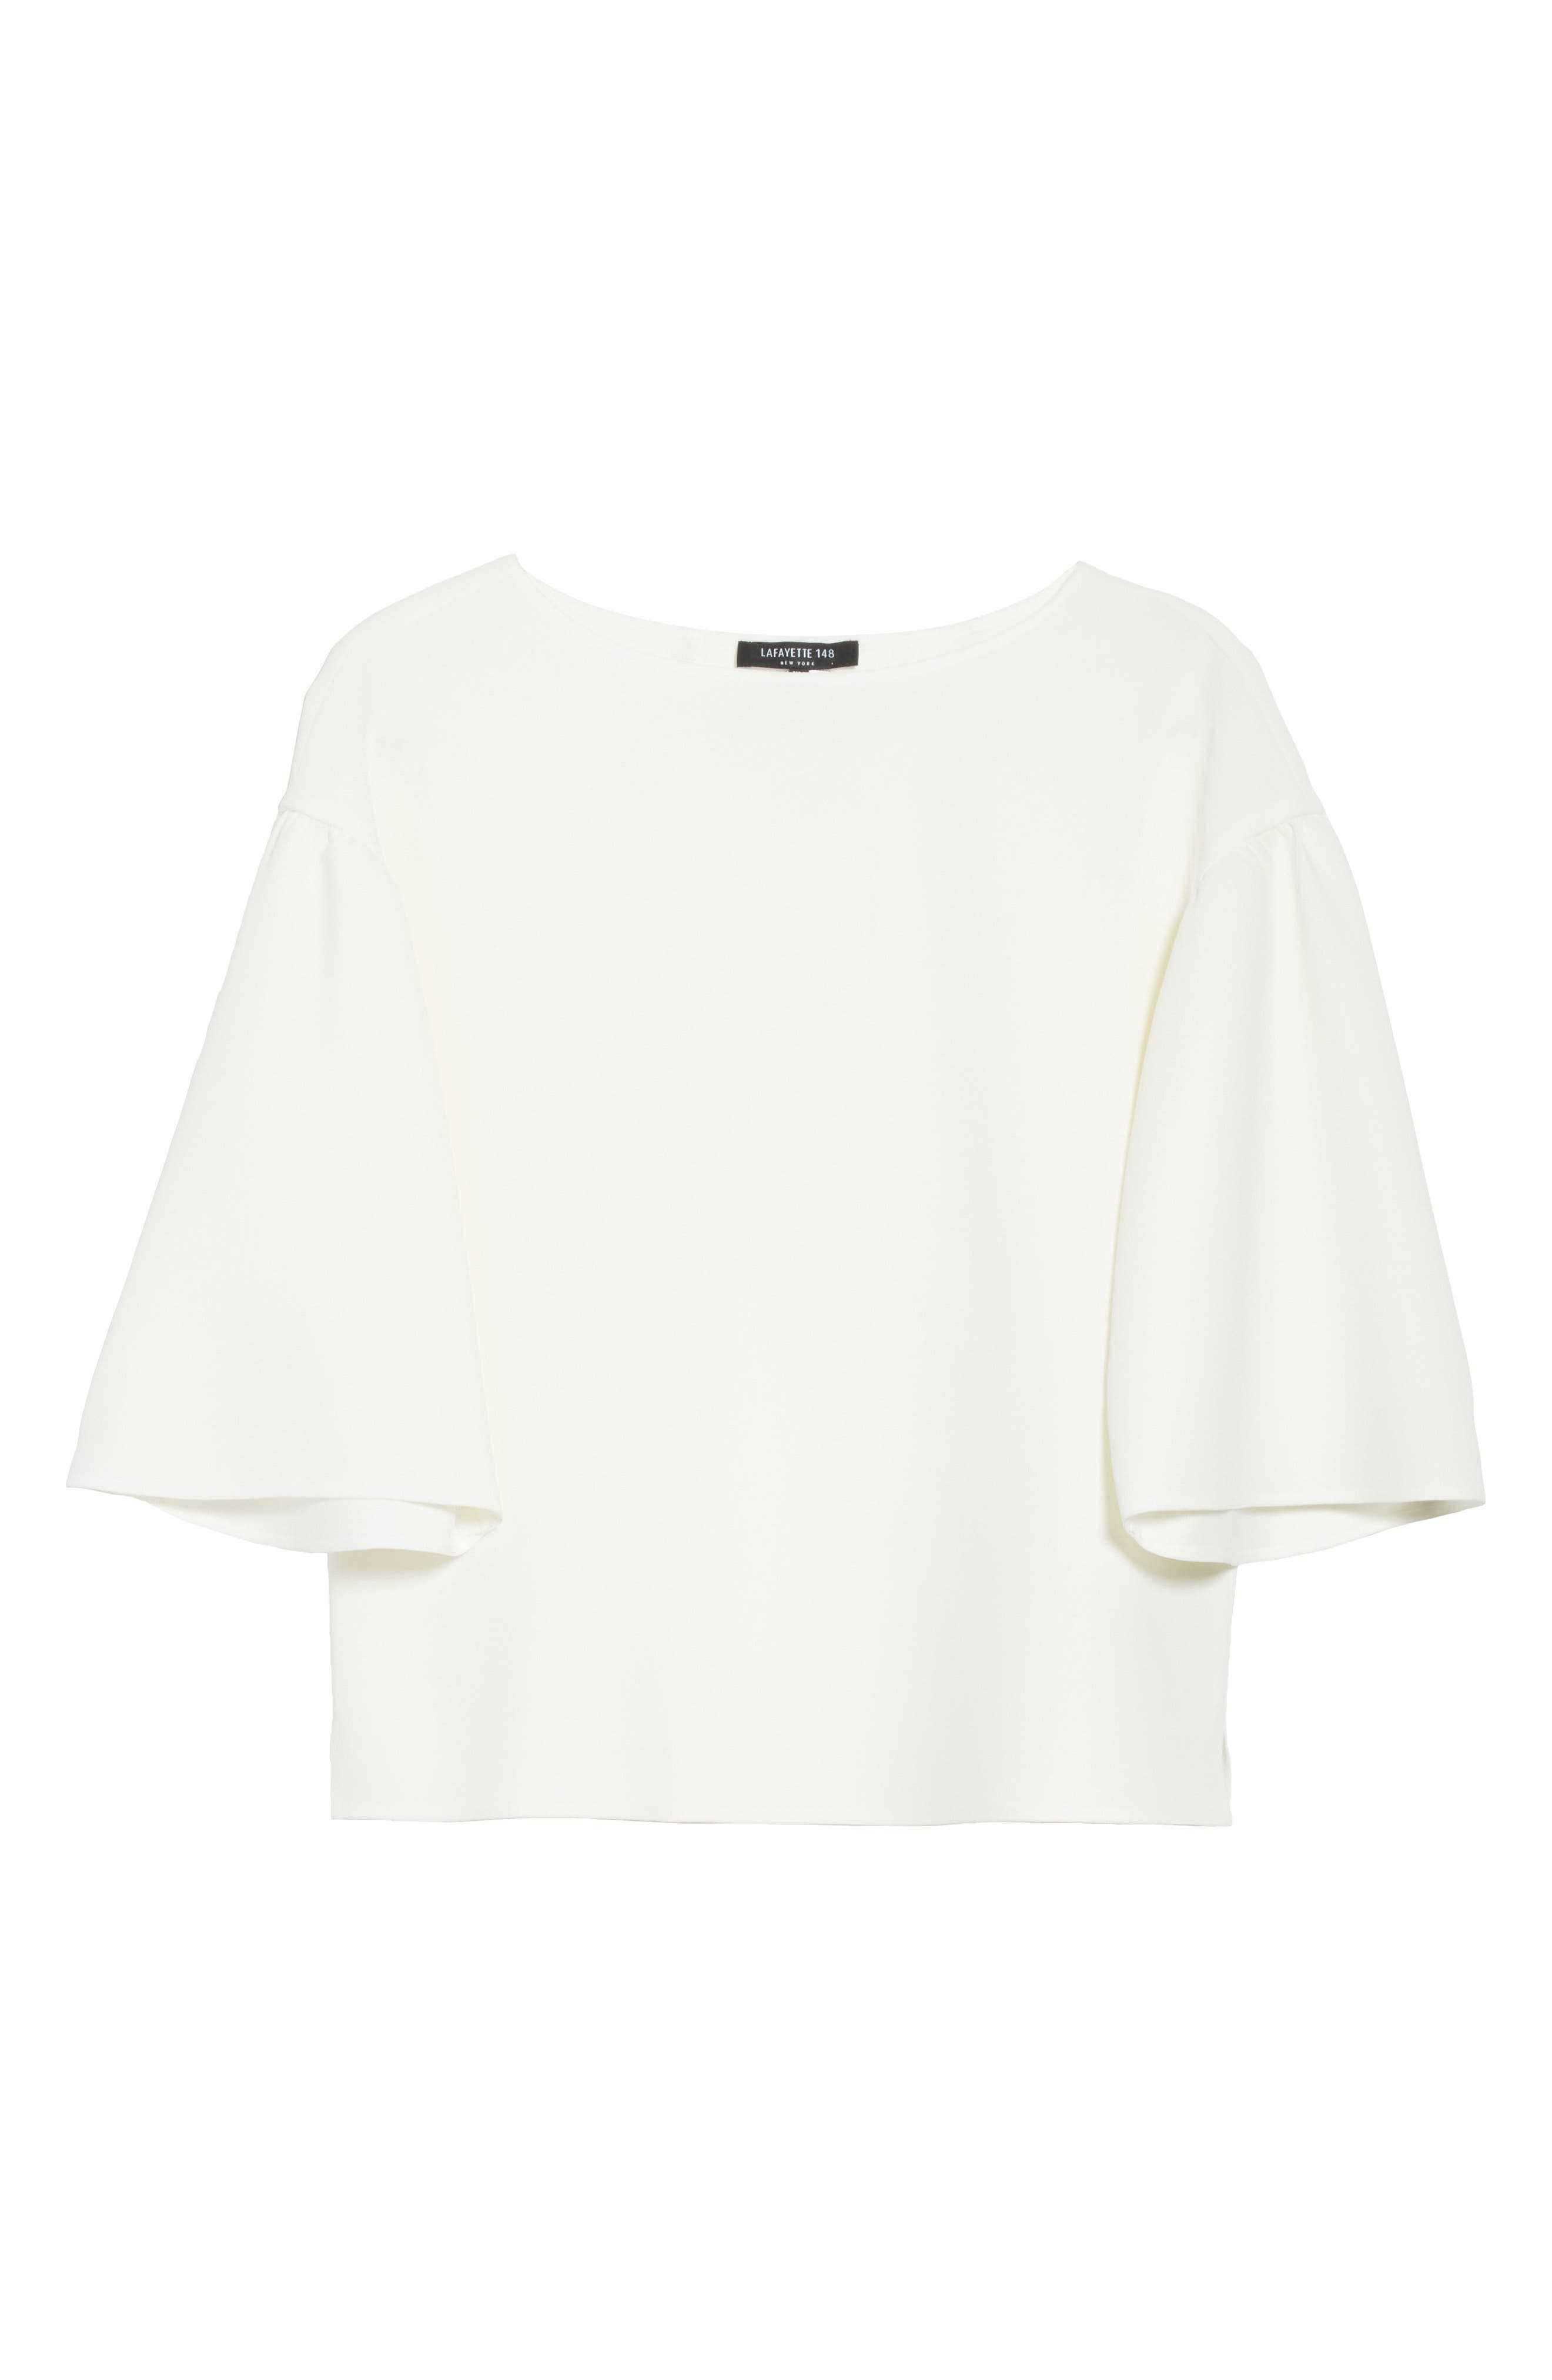 Gwendolyn Blouse,                             Alternate thumbnail 6, color,